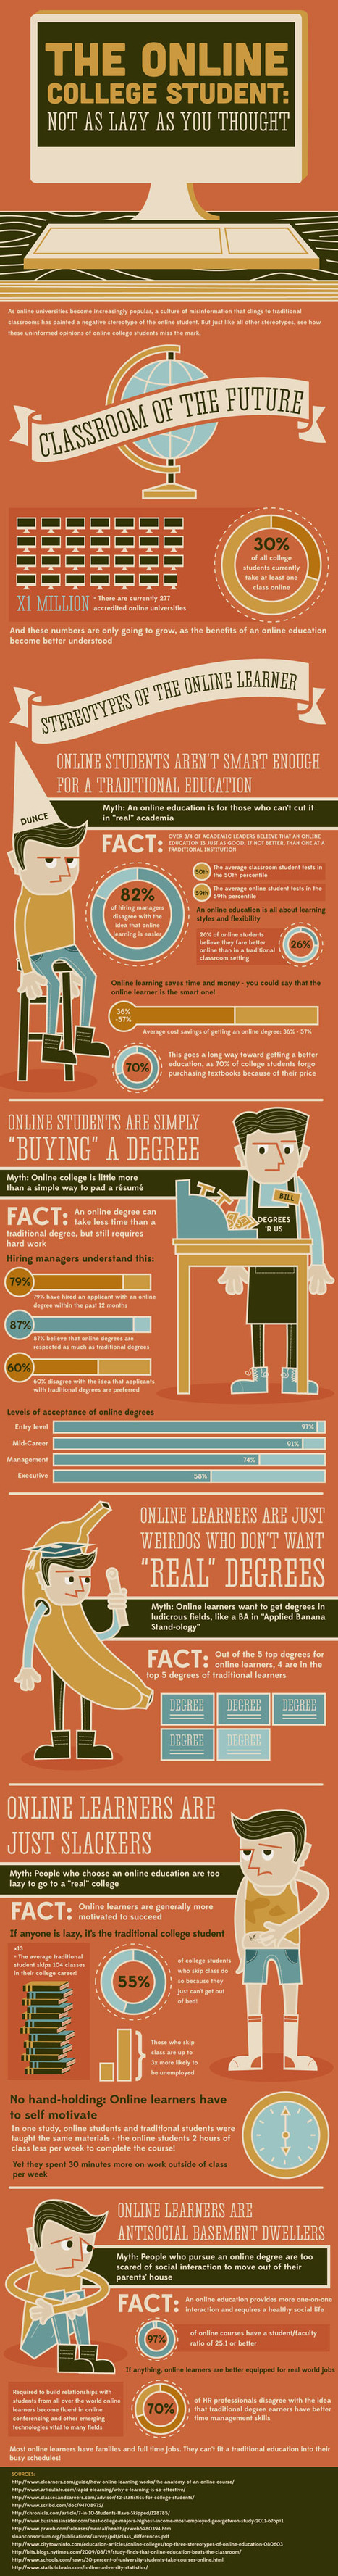 Do you have the wrong impression about online learning? [Infographic] | Computer Literacy | Scoop.it